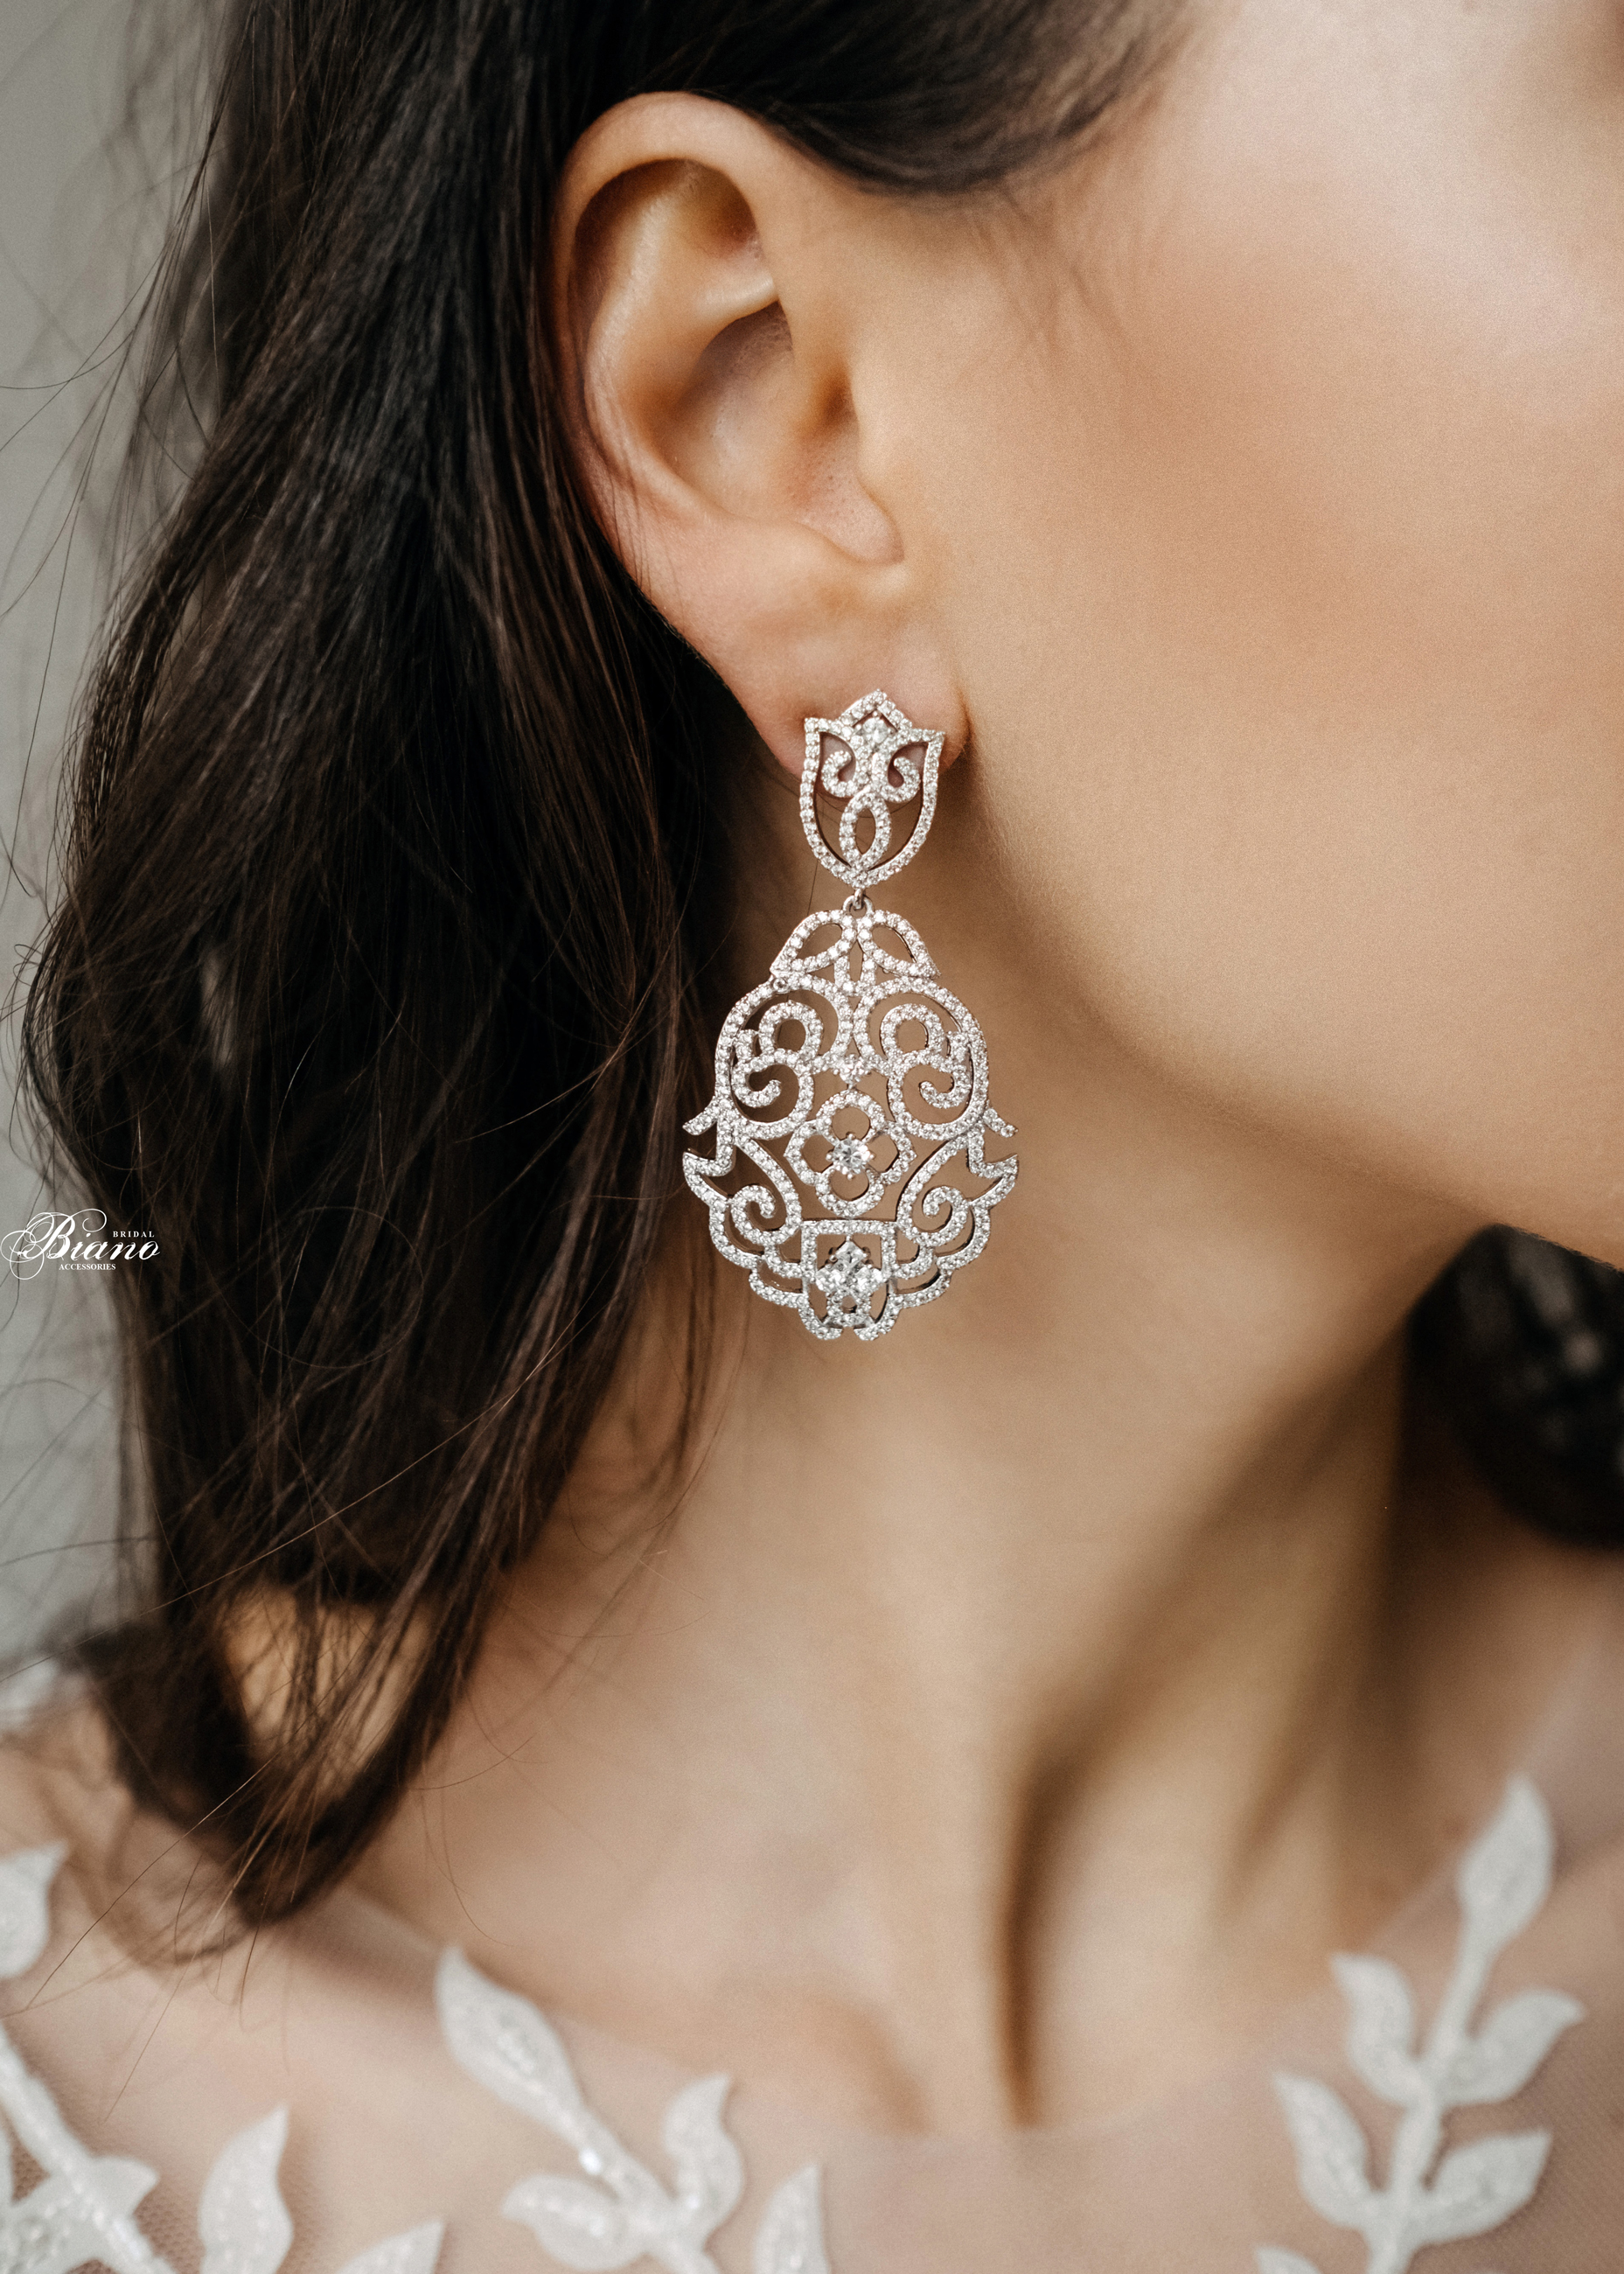 Find your perfect Prom Earrings - Handmade in SwitzerlandUnique DesignPossibility to Rush OrdersFree Shipping WorldwideCustomisable OrdersFast response on your questions